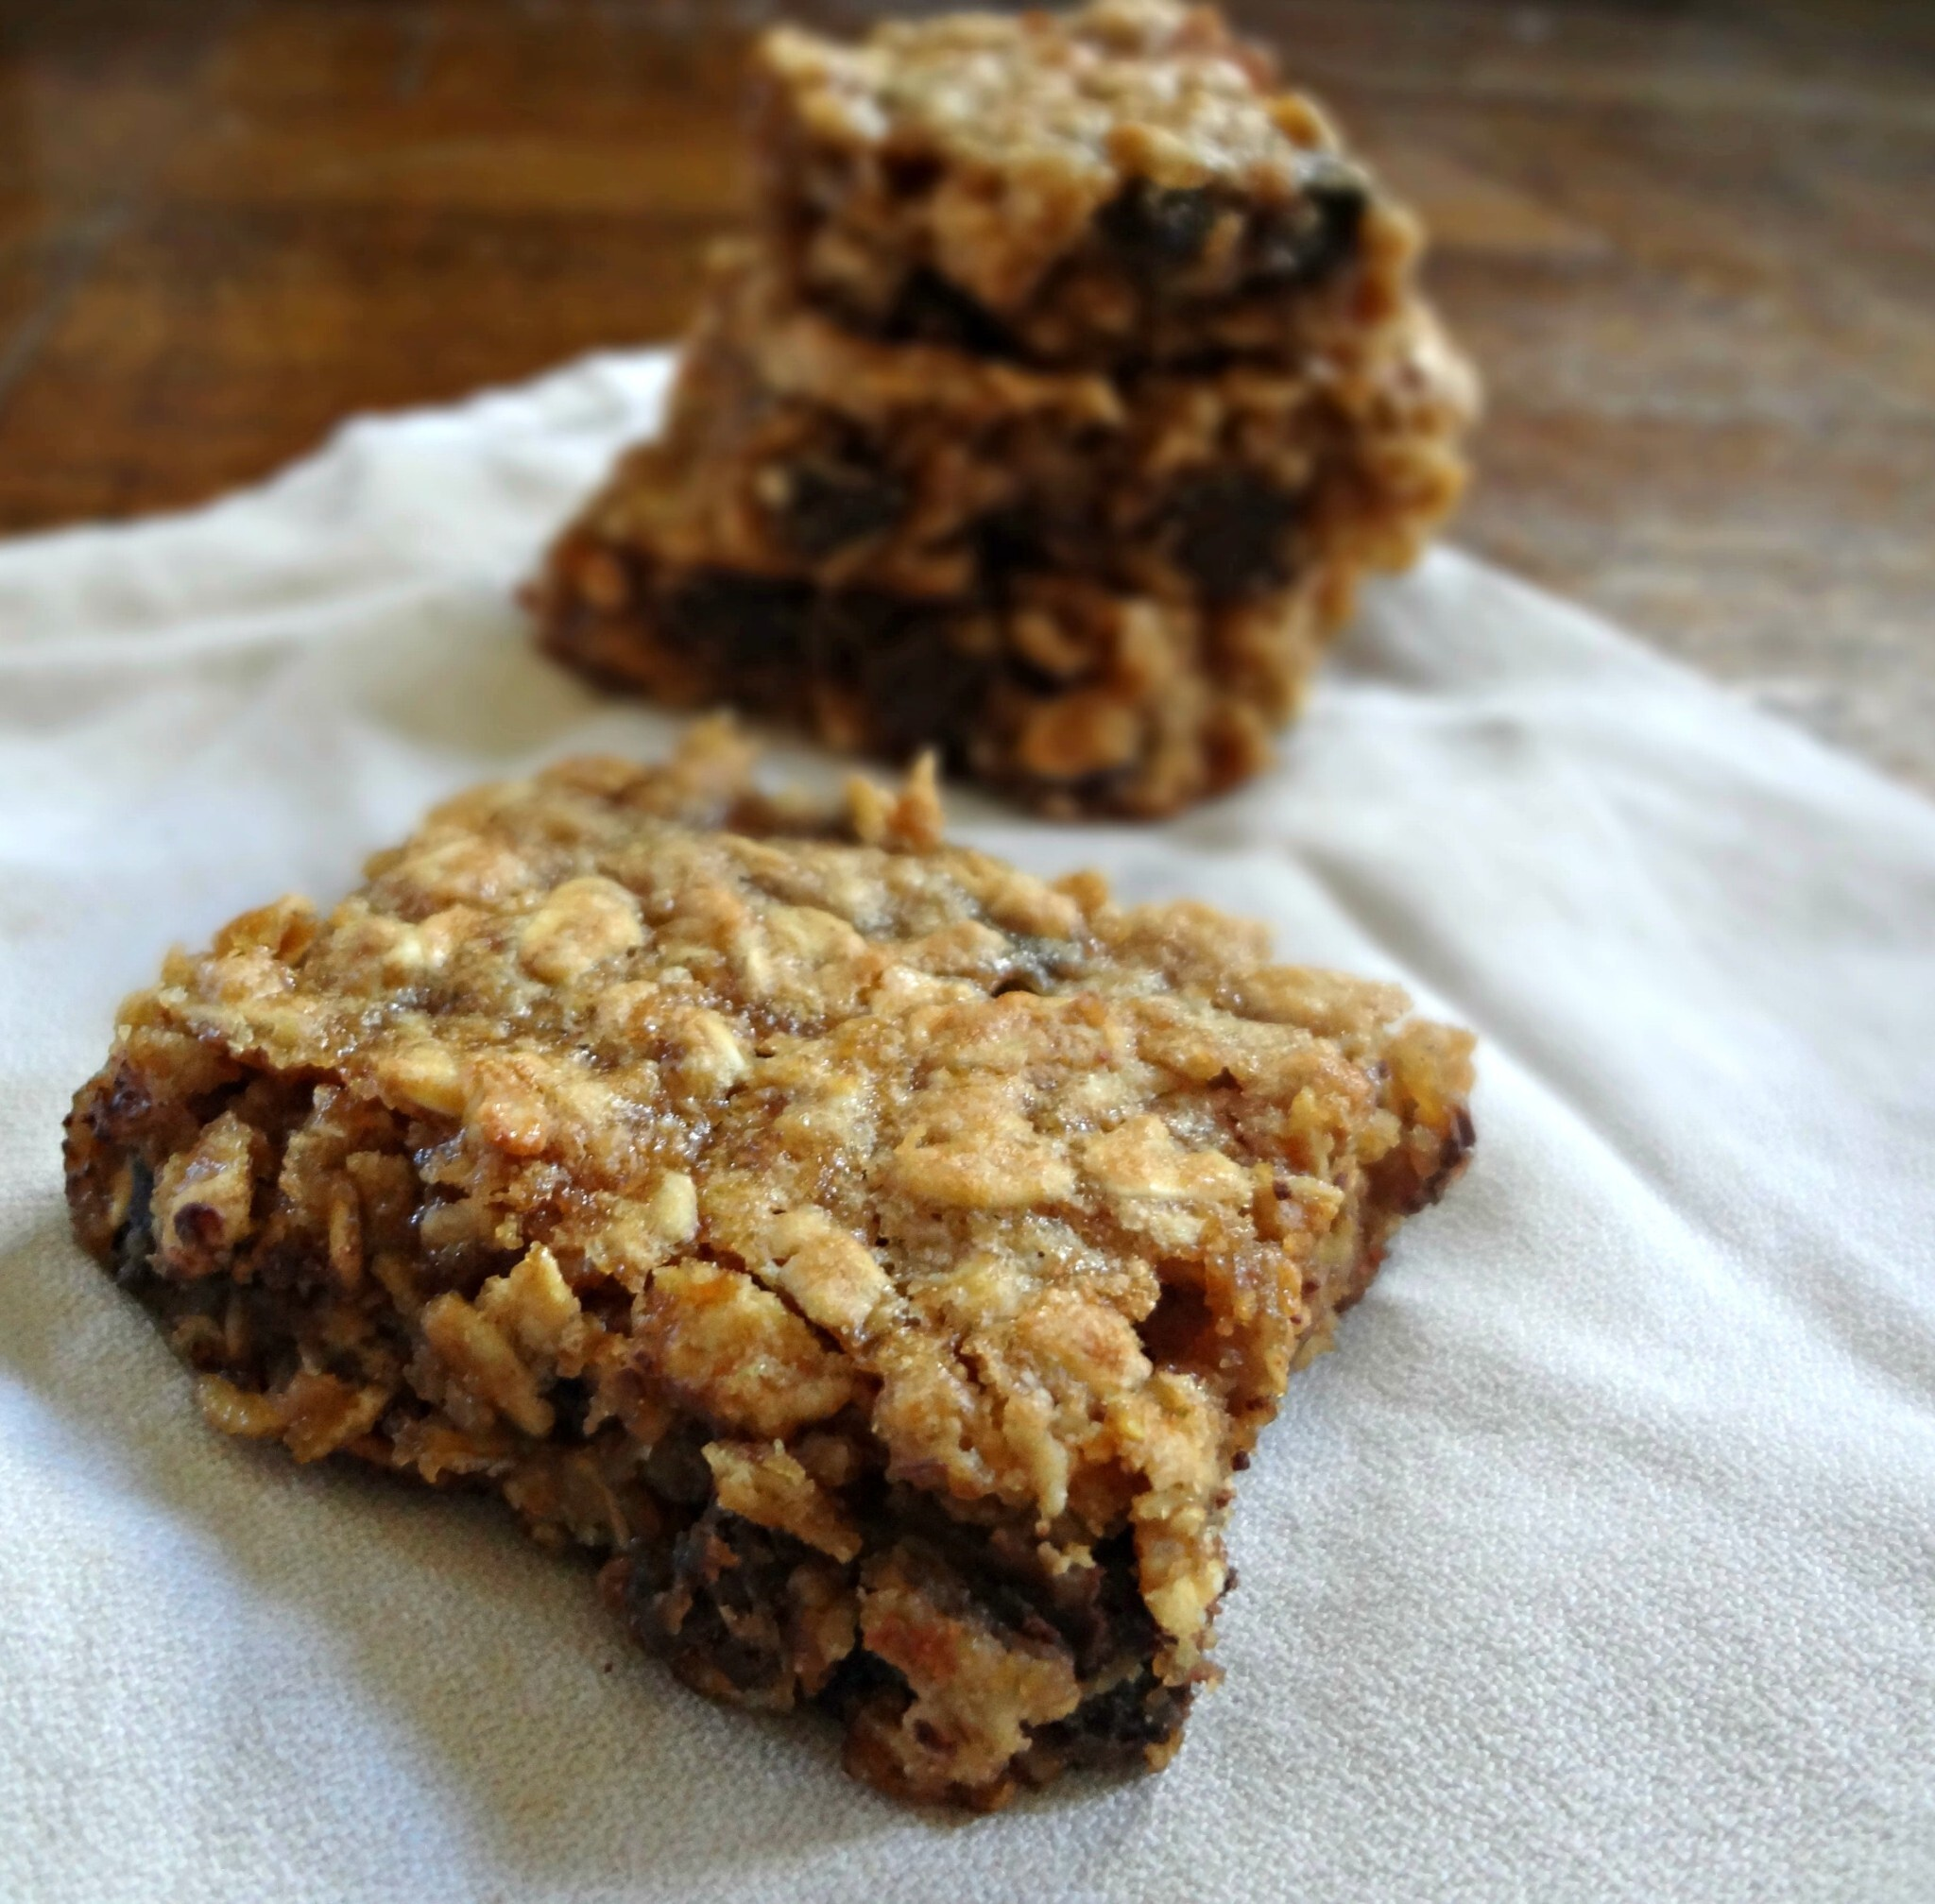 Gooey Peanut Butter Oatmeal Chocolate Chunk Bars (gluten free, dairy free, low fat)